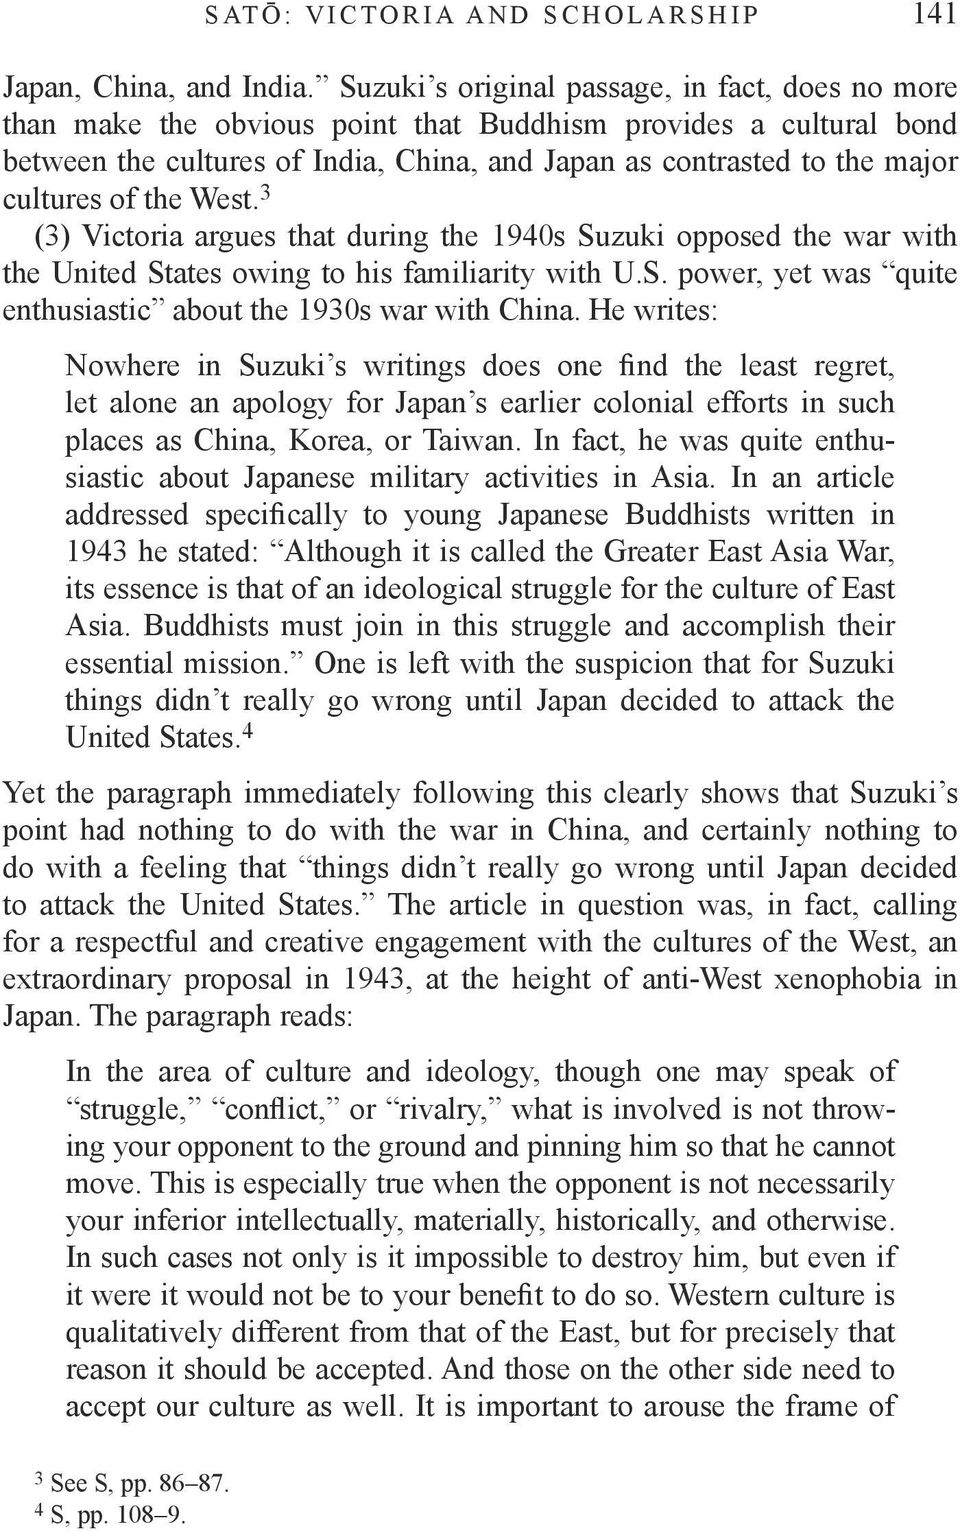 of the West. 3 (3) Victoria argues that during the 1940s Suzuki opposed the war with the United States owing to his familiarity with U.S. power, yet was quite enthusiastic about the 1930s war with China.